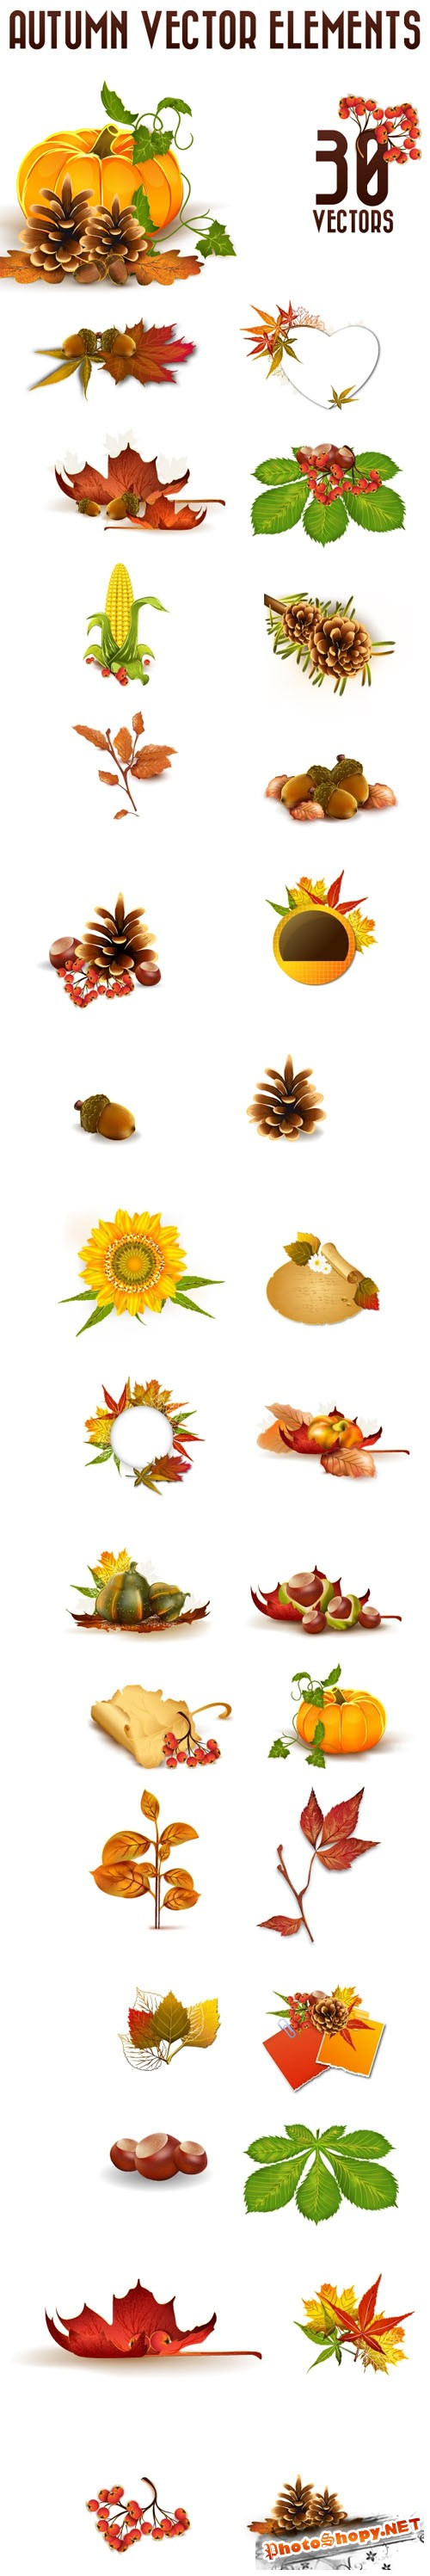 Designtnt - Vector Autumn Elements Set 1